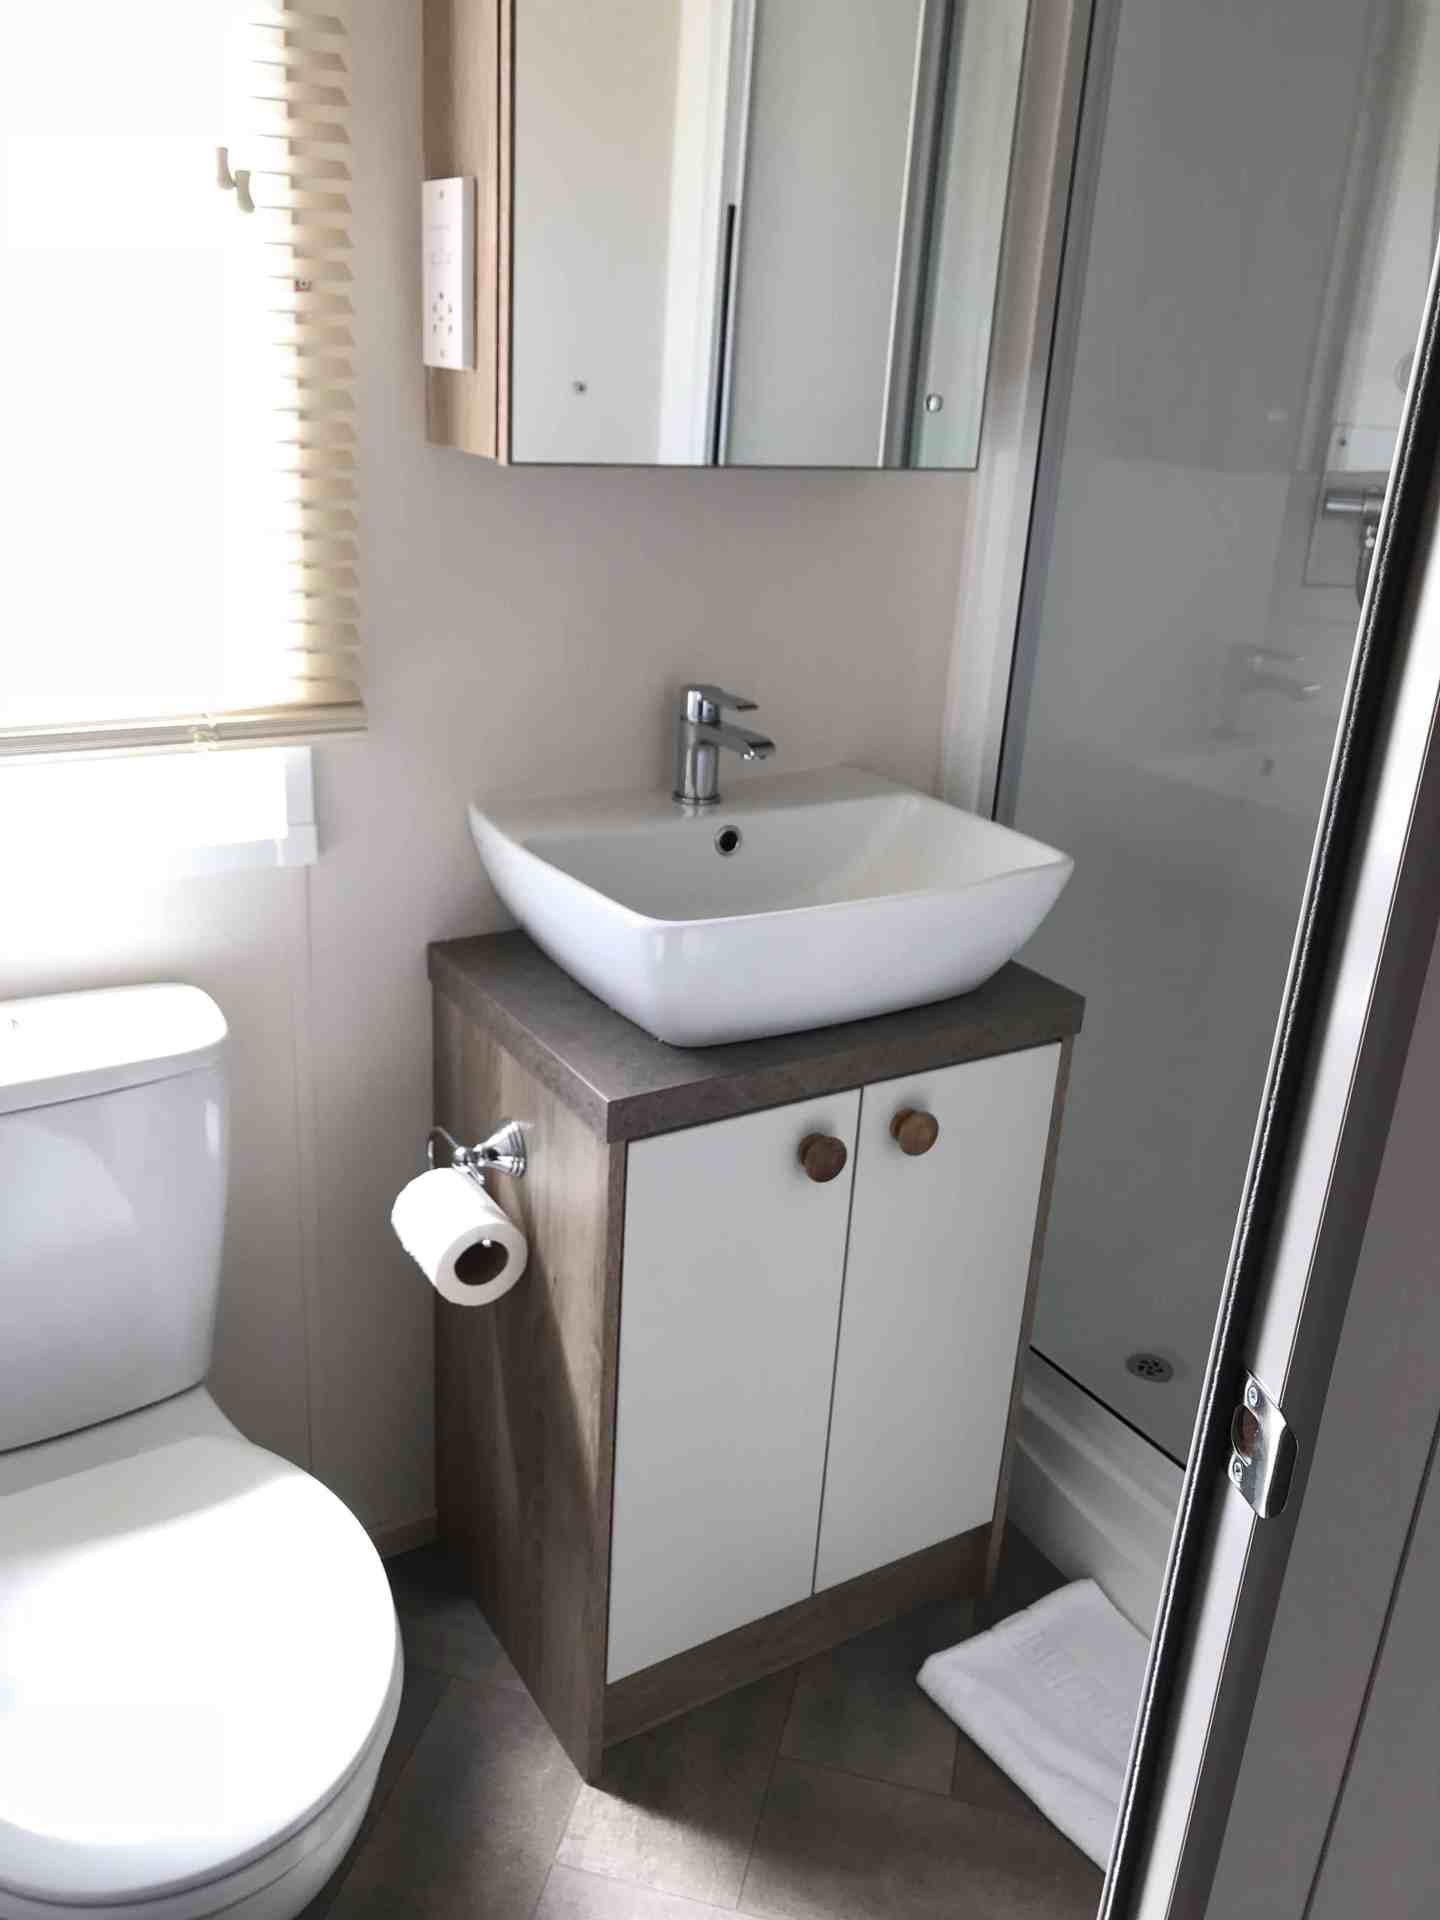 Static caravan shower room at Trevornick, Cornwall